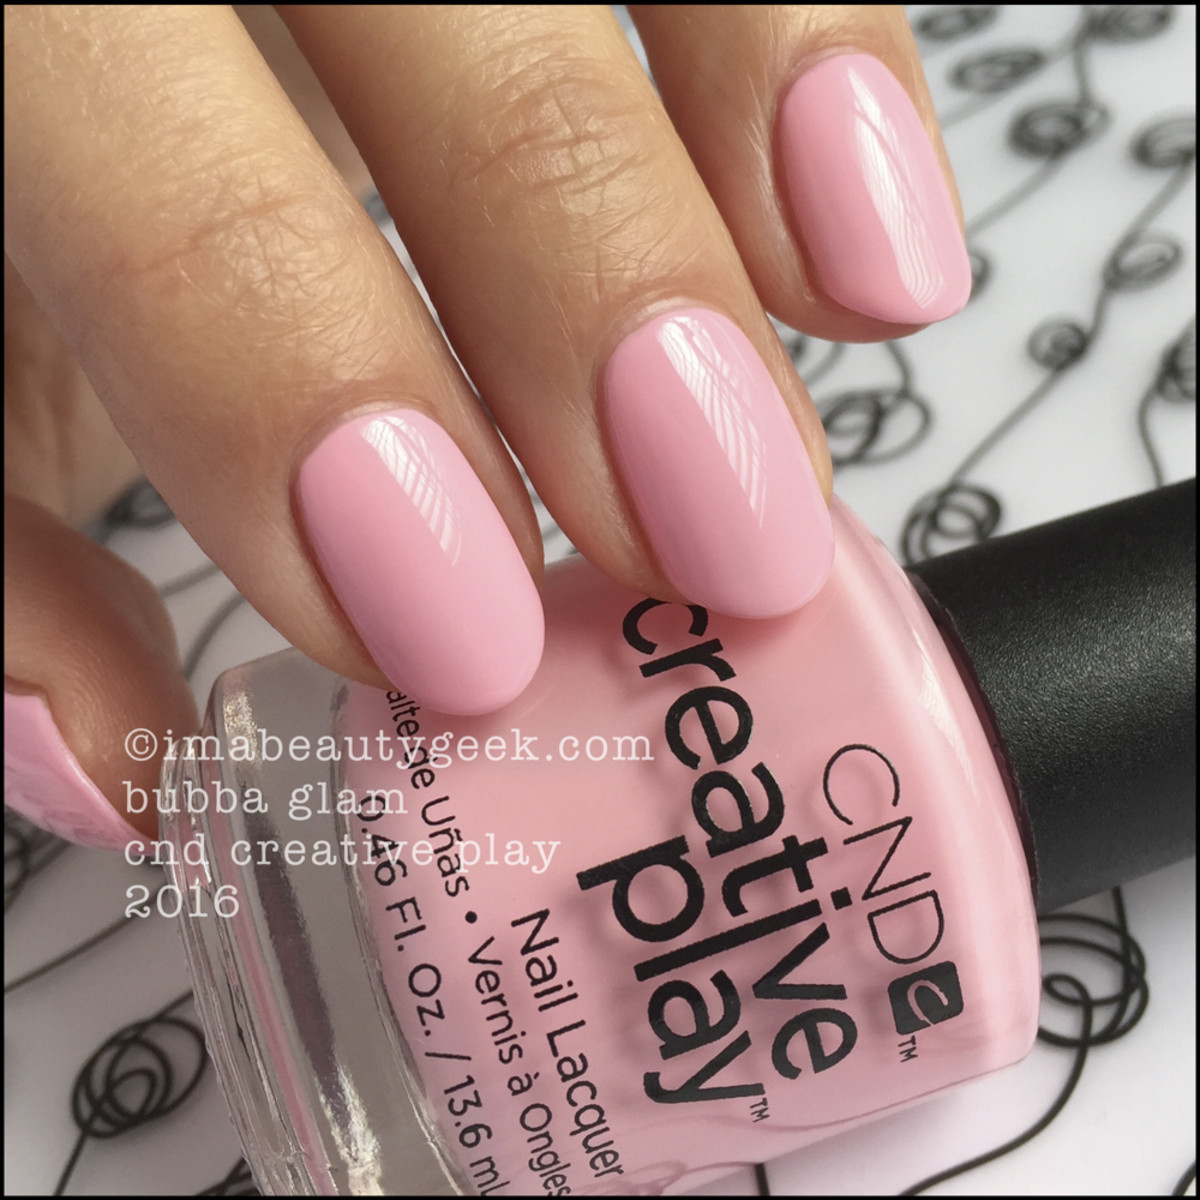 CND Creative Play Bubba Glam_CND Creative Play Nail Lacquer Swatches 2016